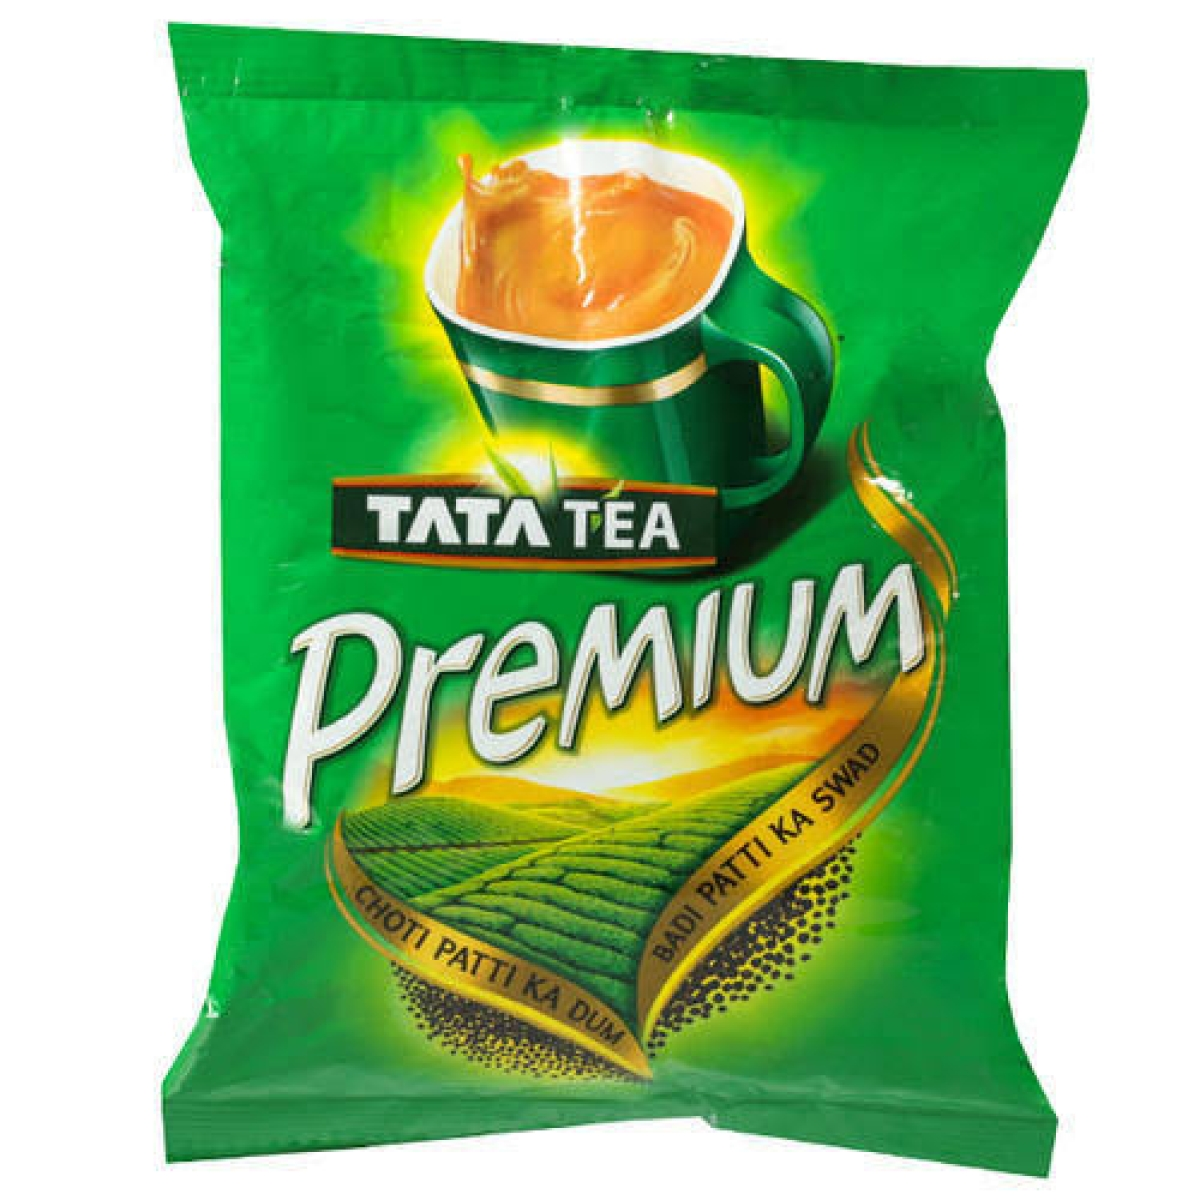 New packaging launched in August 2015